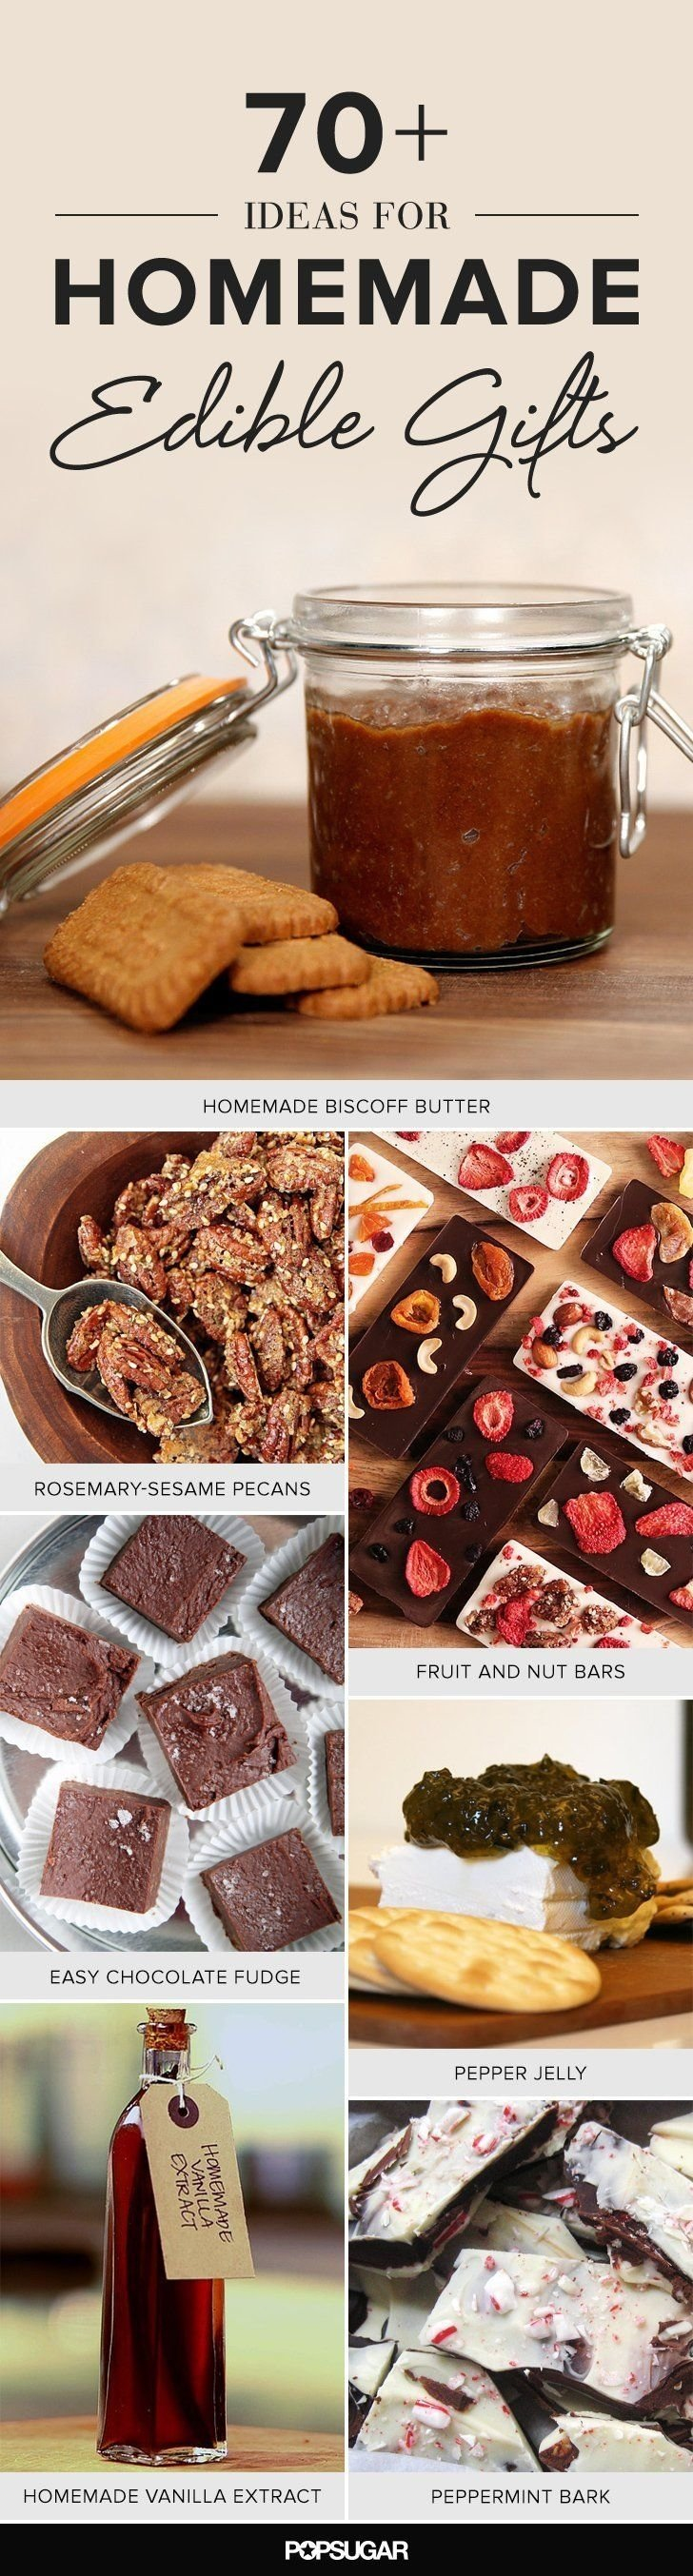 Easy Homemade Christmas Food Gifts | Dealssite.co